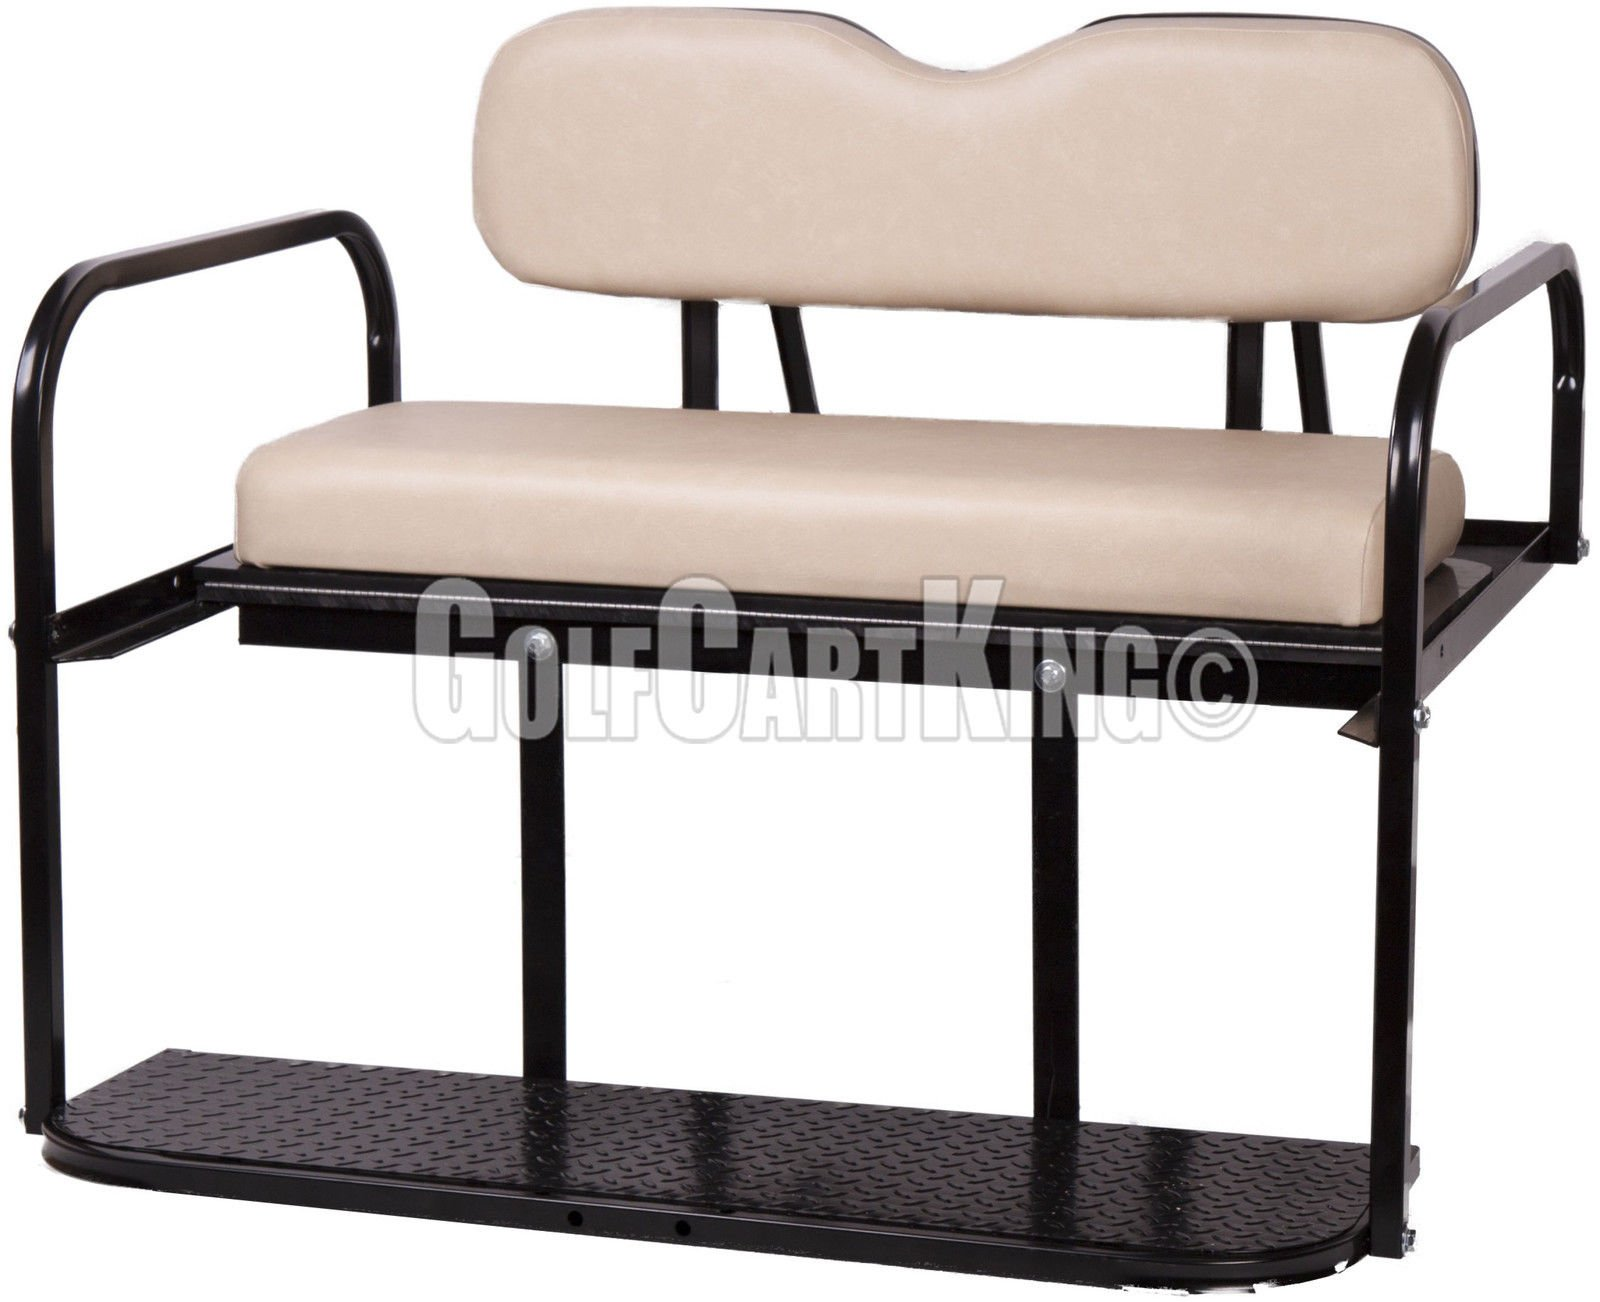 Club Car Precedent (2004 - Up) Golf Cart Rear Flip Seat Kit - Buff